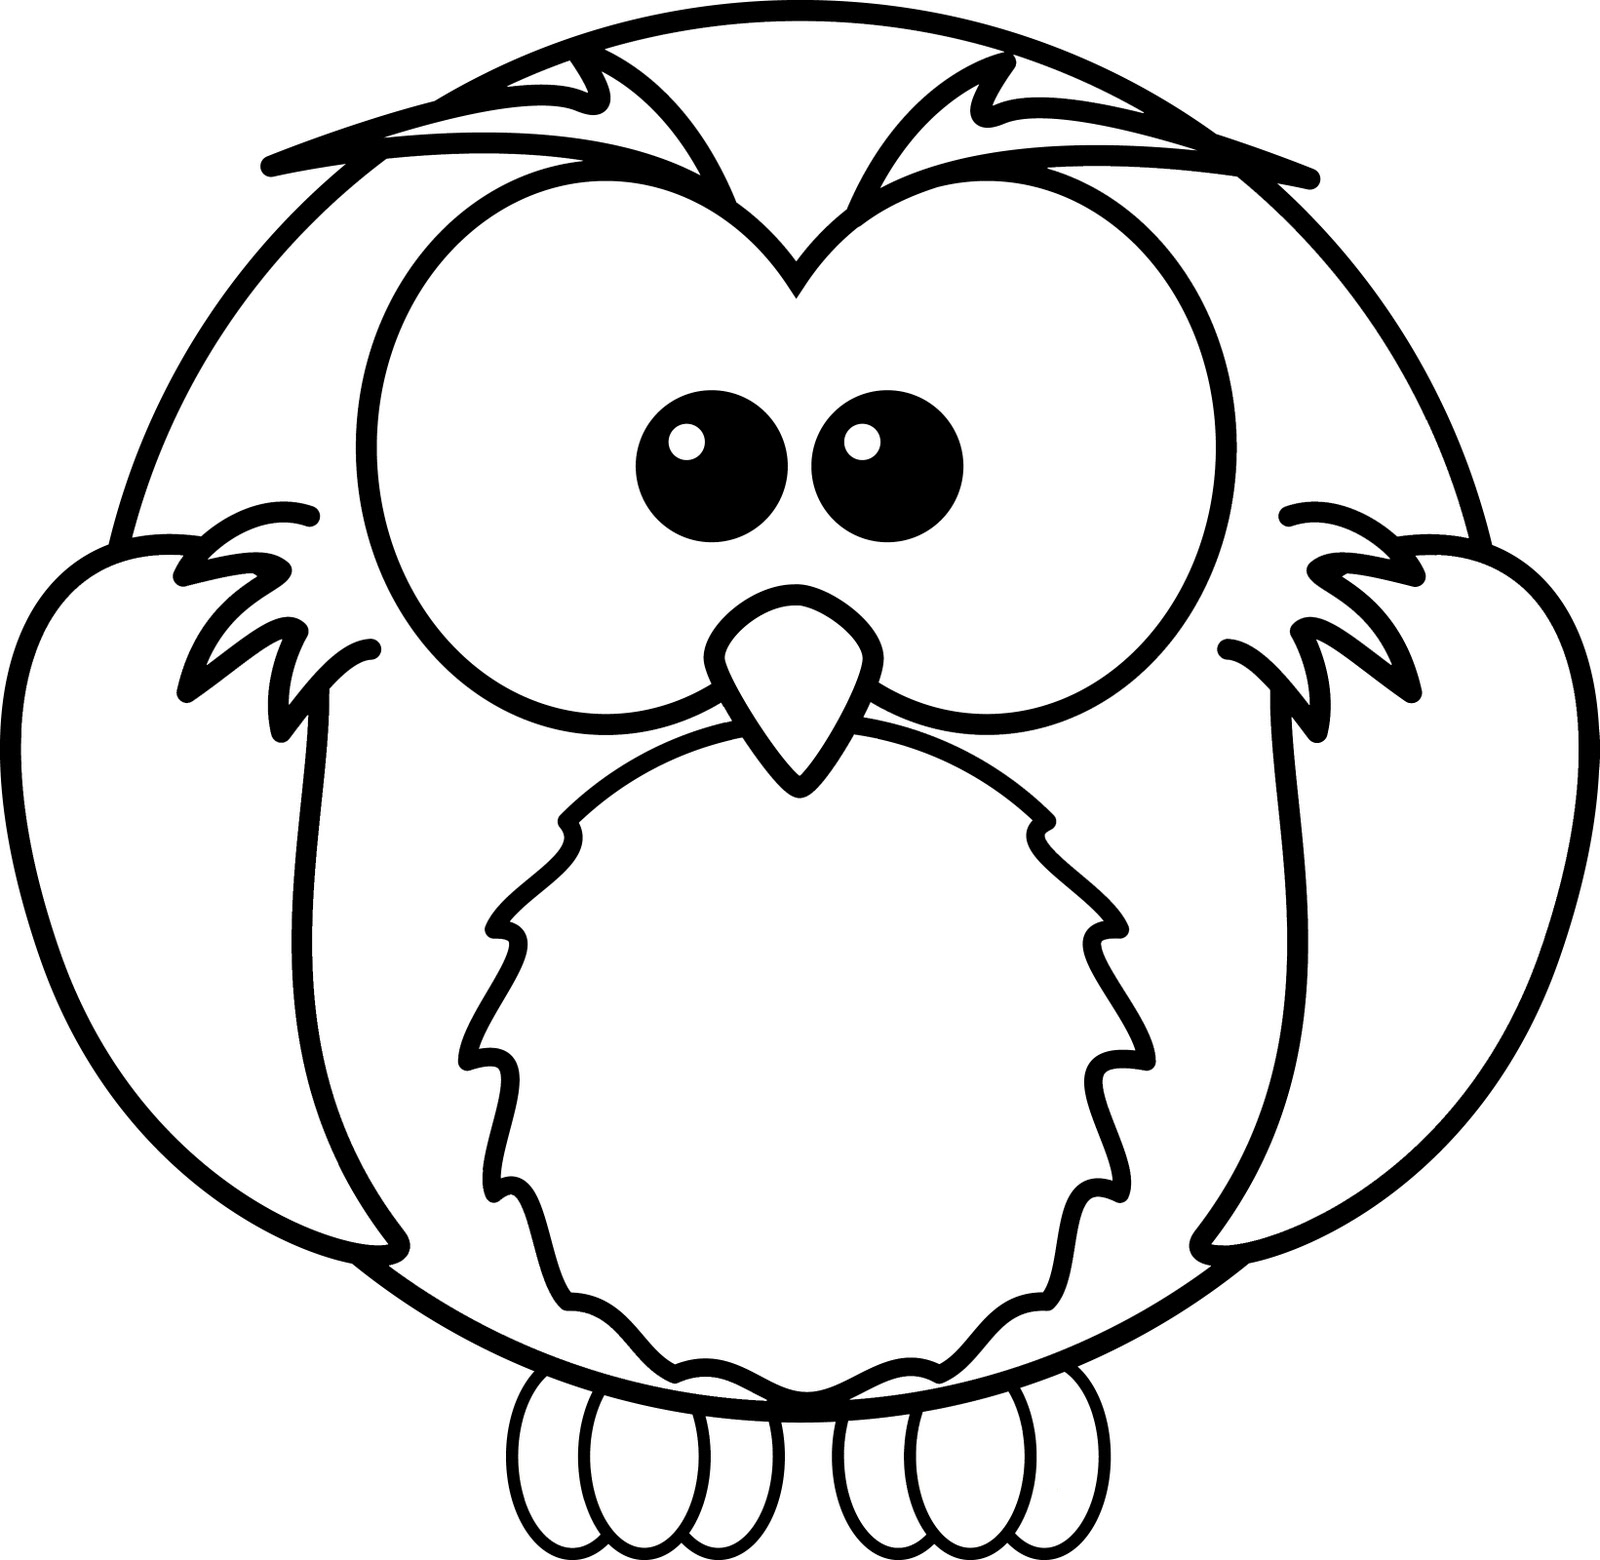 owl color sheets 10 of the best ideas for printable owl coloring pages sheets color owl